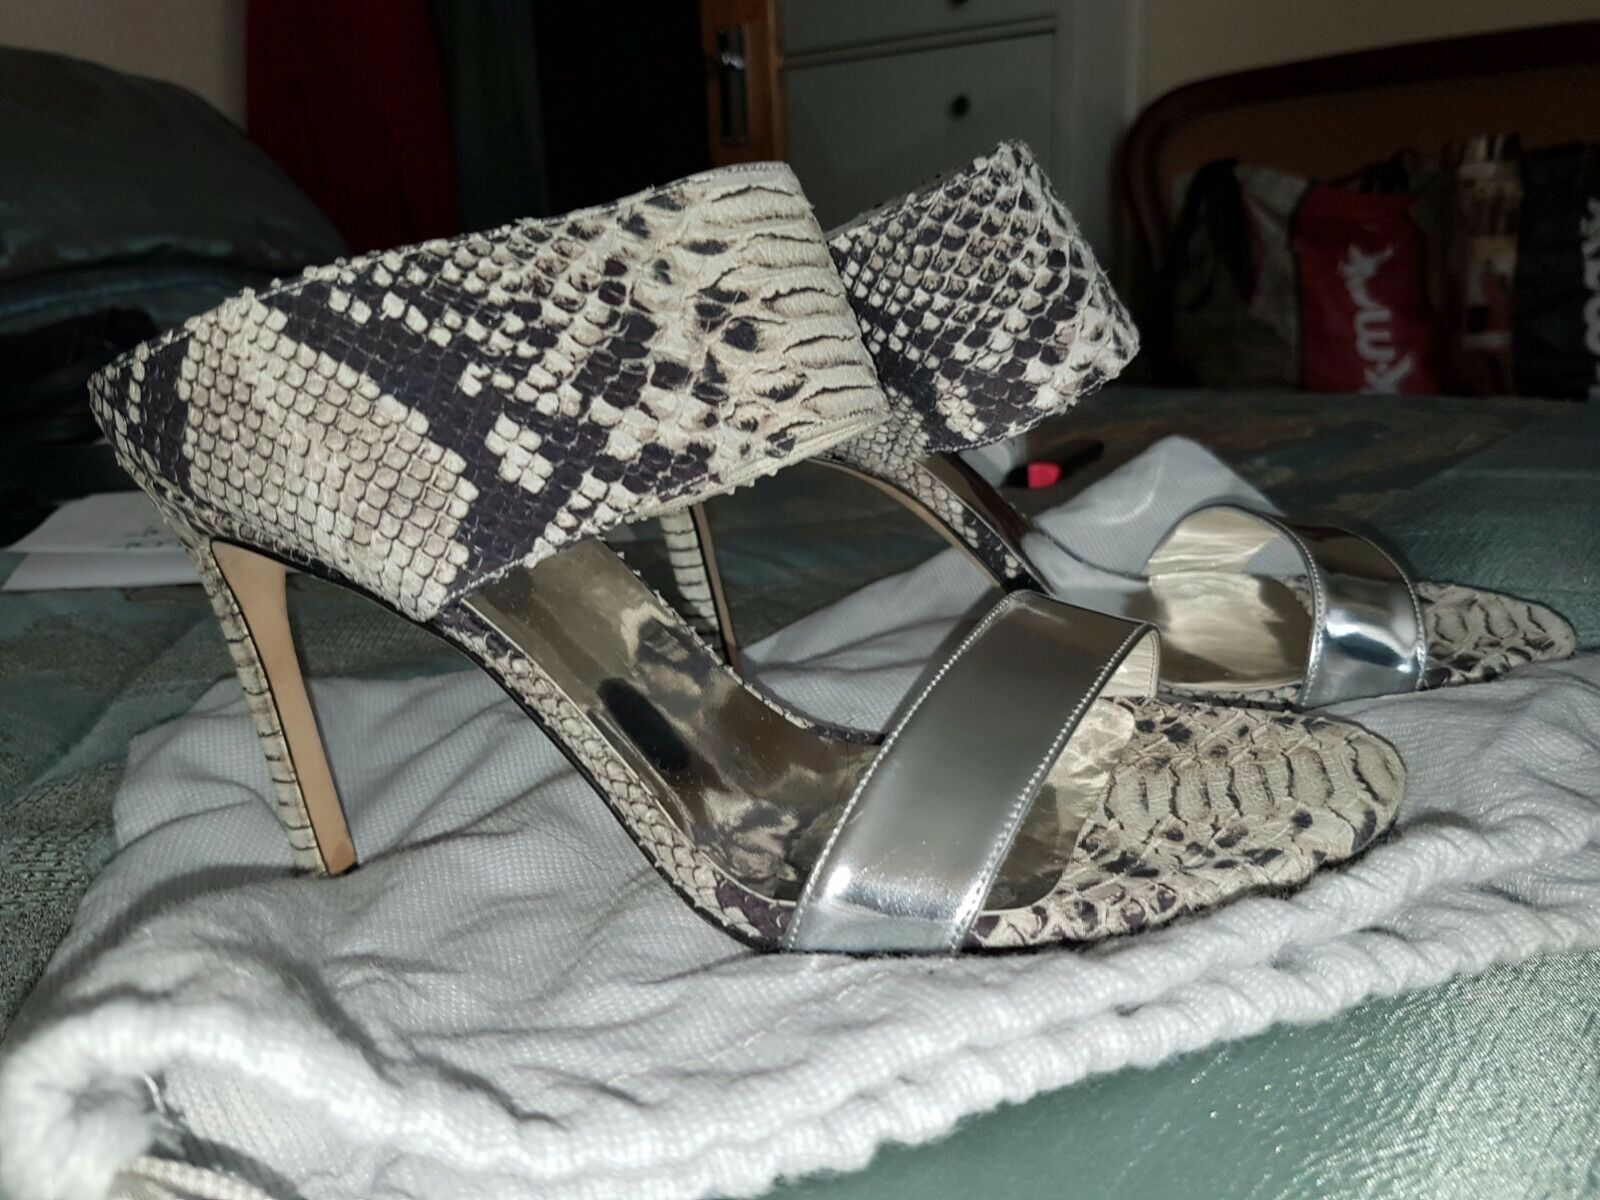 Russell & Bromley Bromley Bromley ladies Größe 6 snake skin schuhe new & unused 6cb920